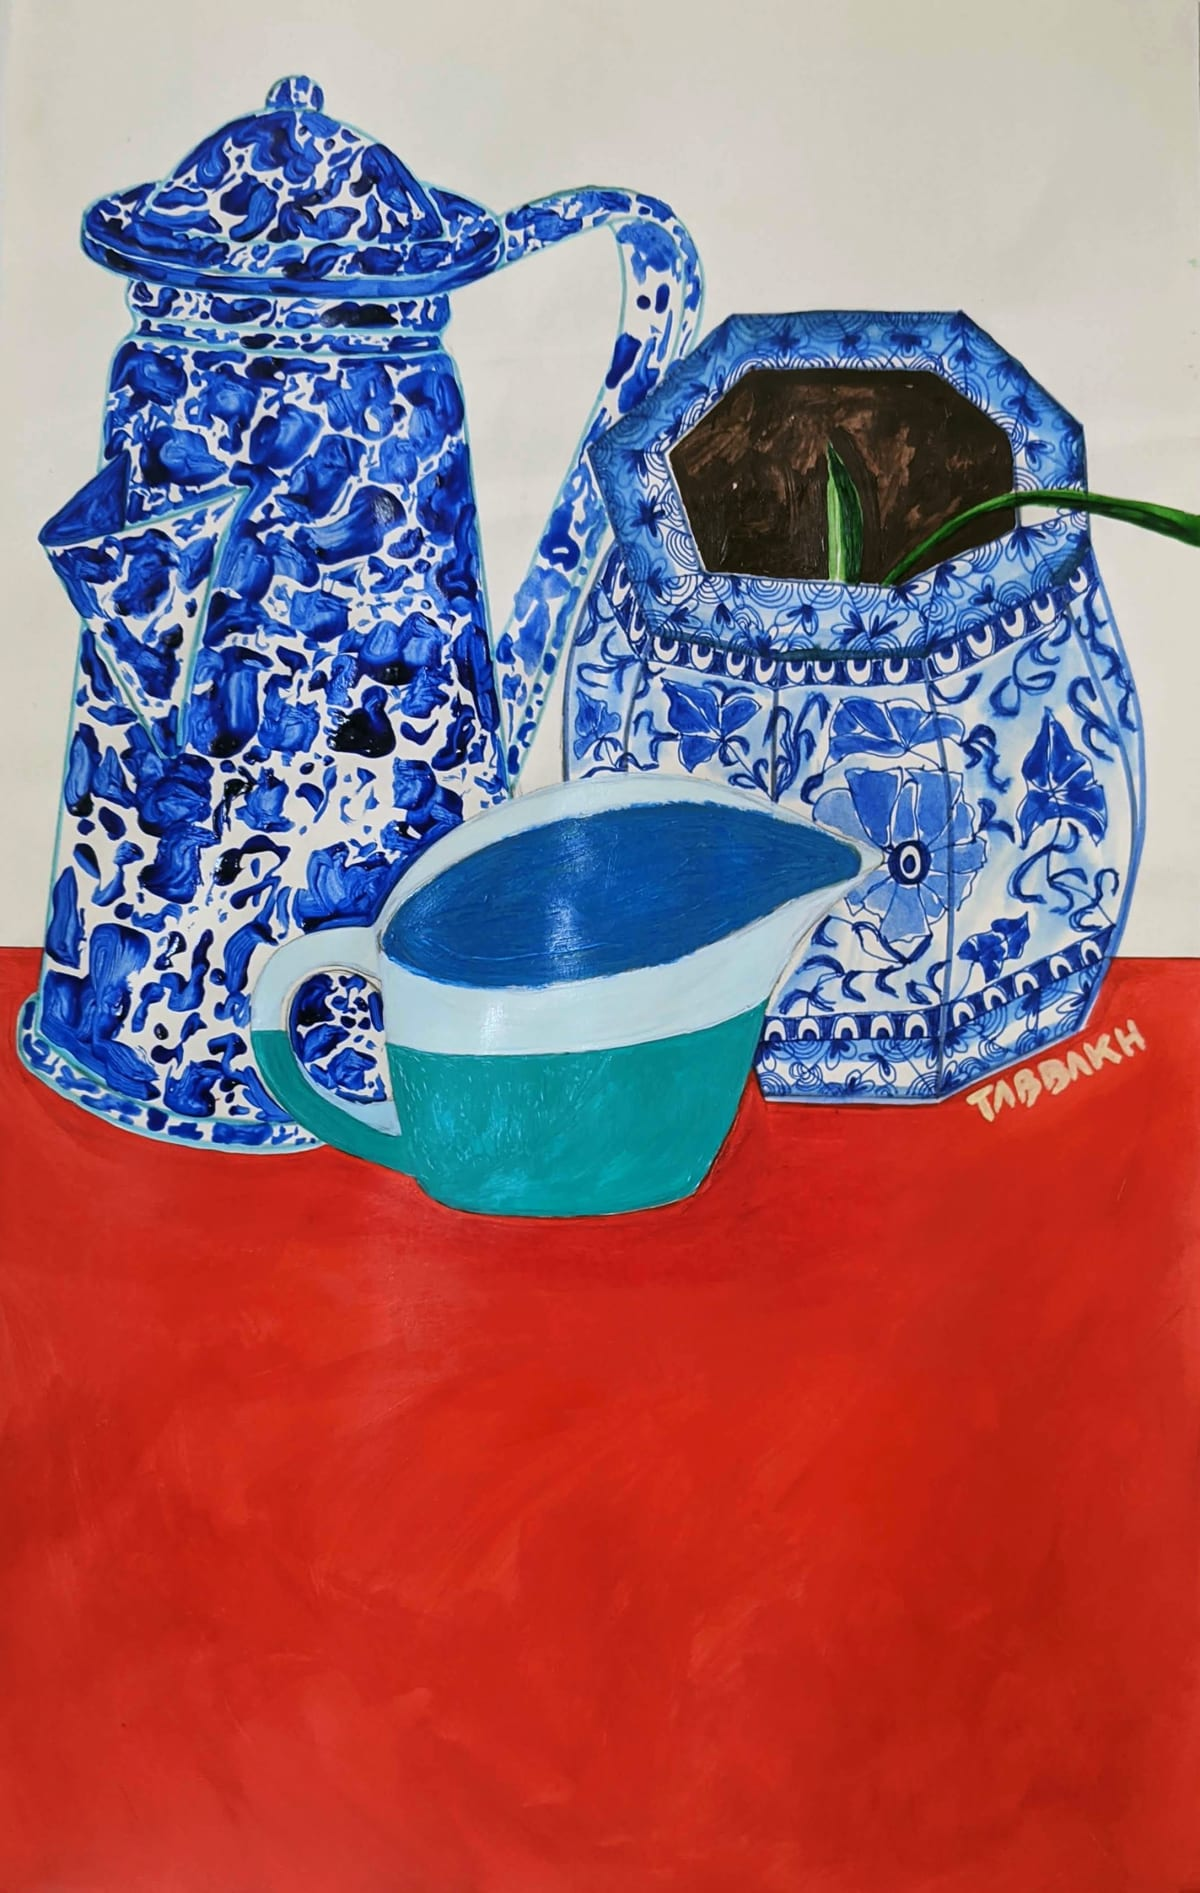 Cathy Tabbakh Teapot, Plant Pot and Gravy Pot , 2020 Acrylic, Ink, Watercolour and Oil Pastels on Paper 40 x 25 cm 15 3/4 x 9 7/8 in